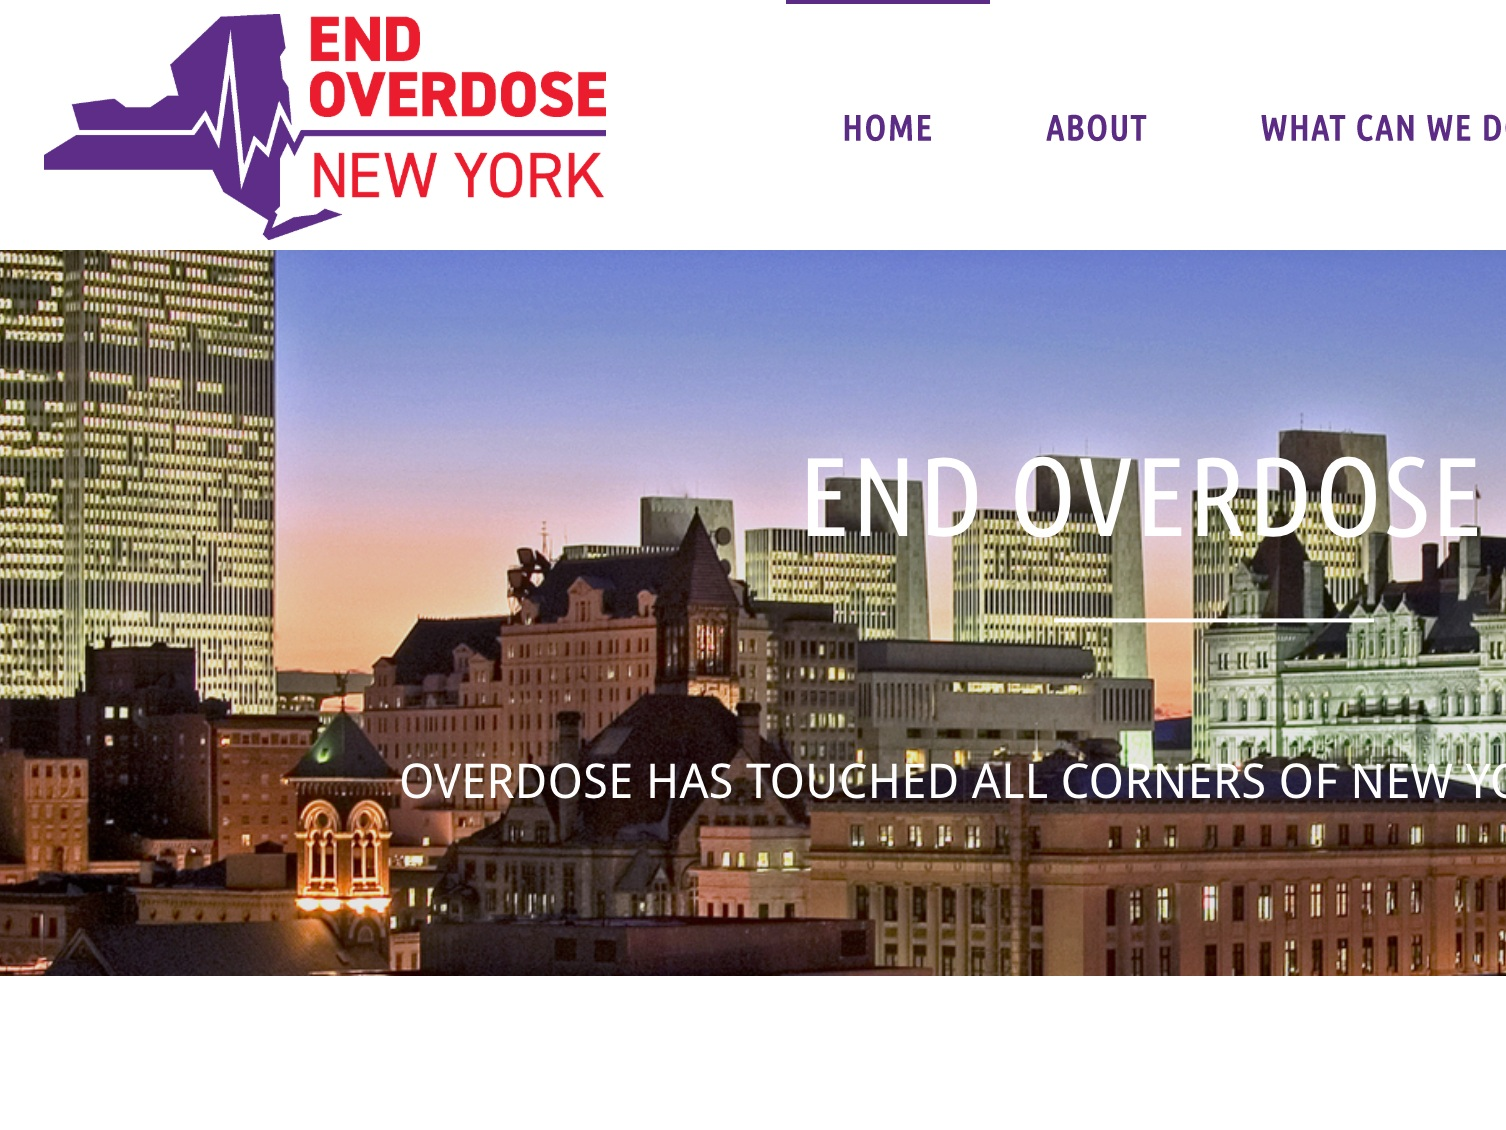 End overdose New york - End Overdose New York is a campaign to support evidence-based harm reduction and public health centered responses to opioid overdose.